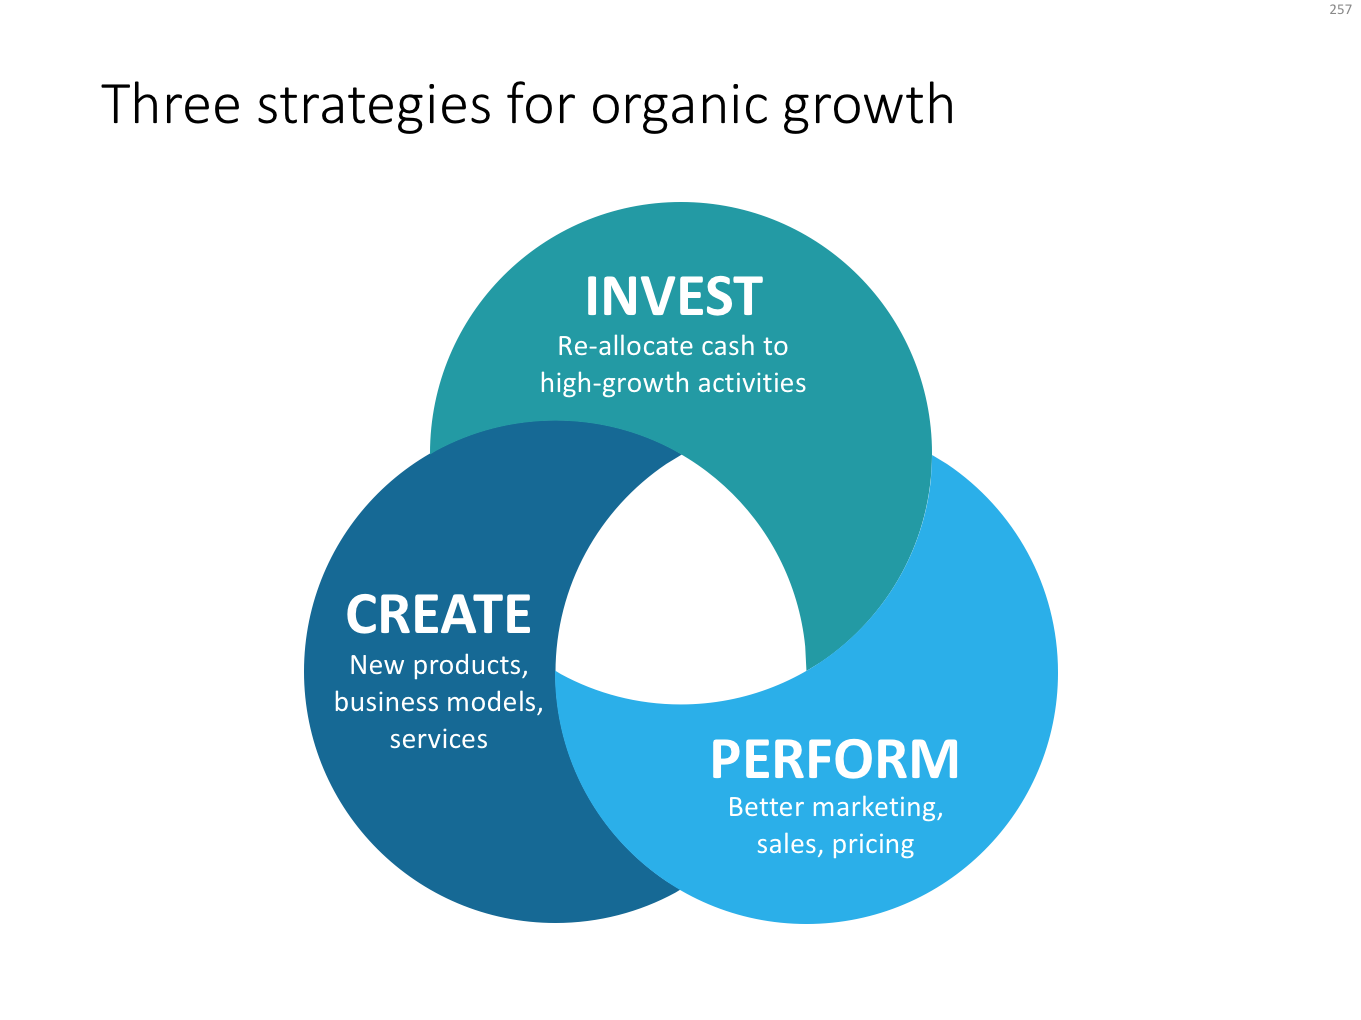 Make over - McKinsey - 3 strategies for organic growth.png